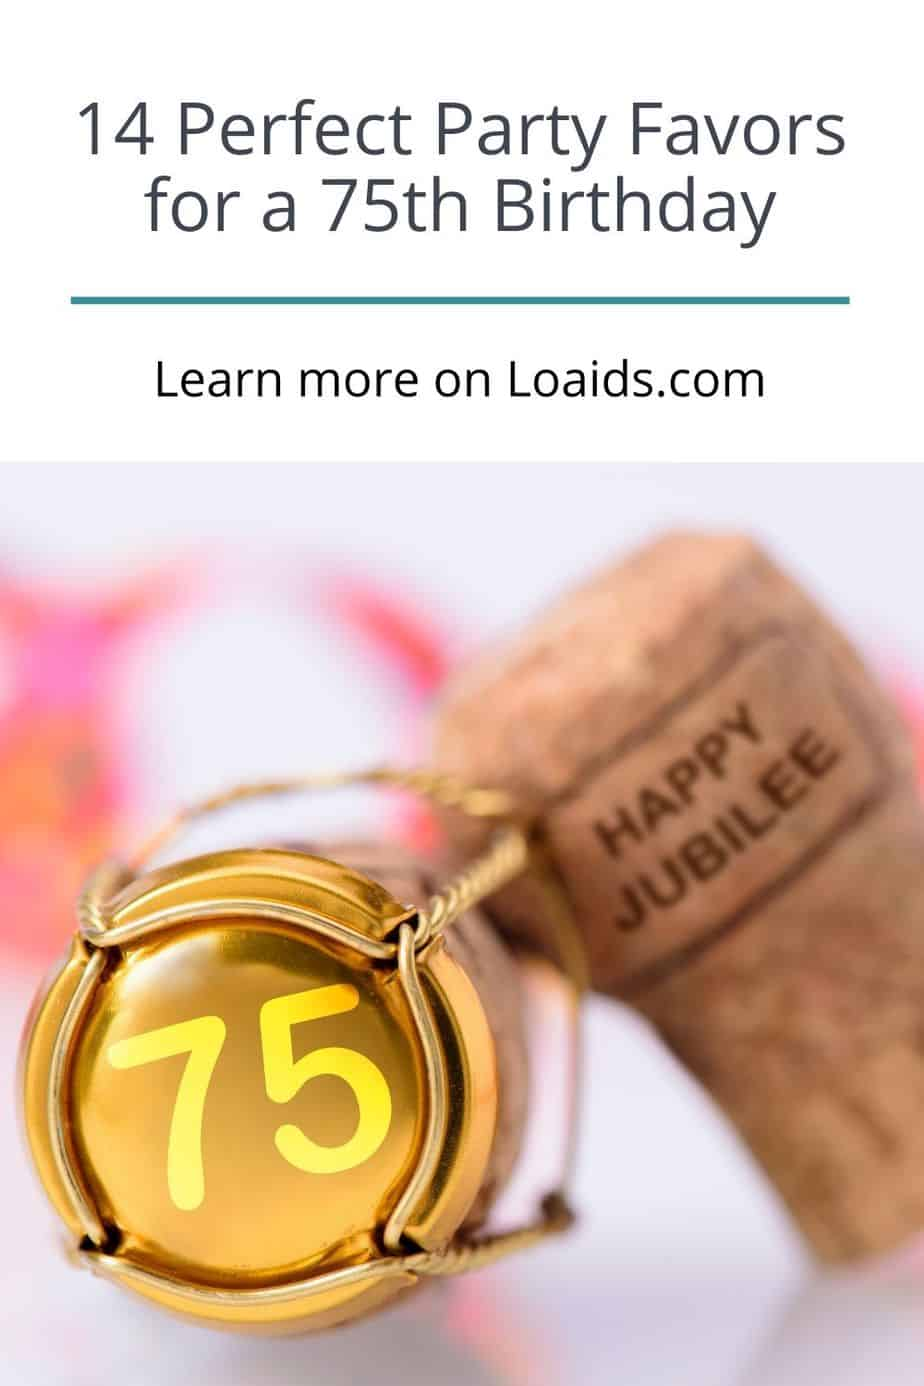 wine cork with #75, one of the best 75th birthday favor ideas